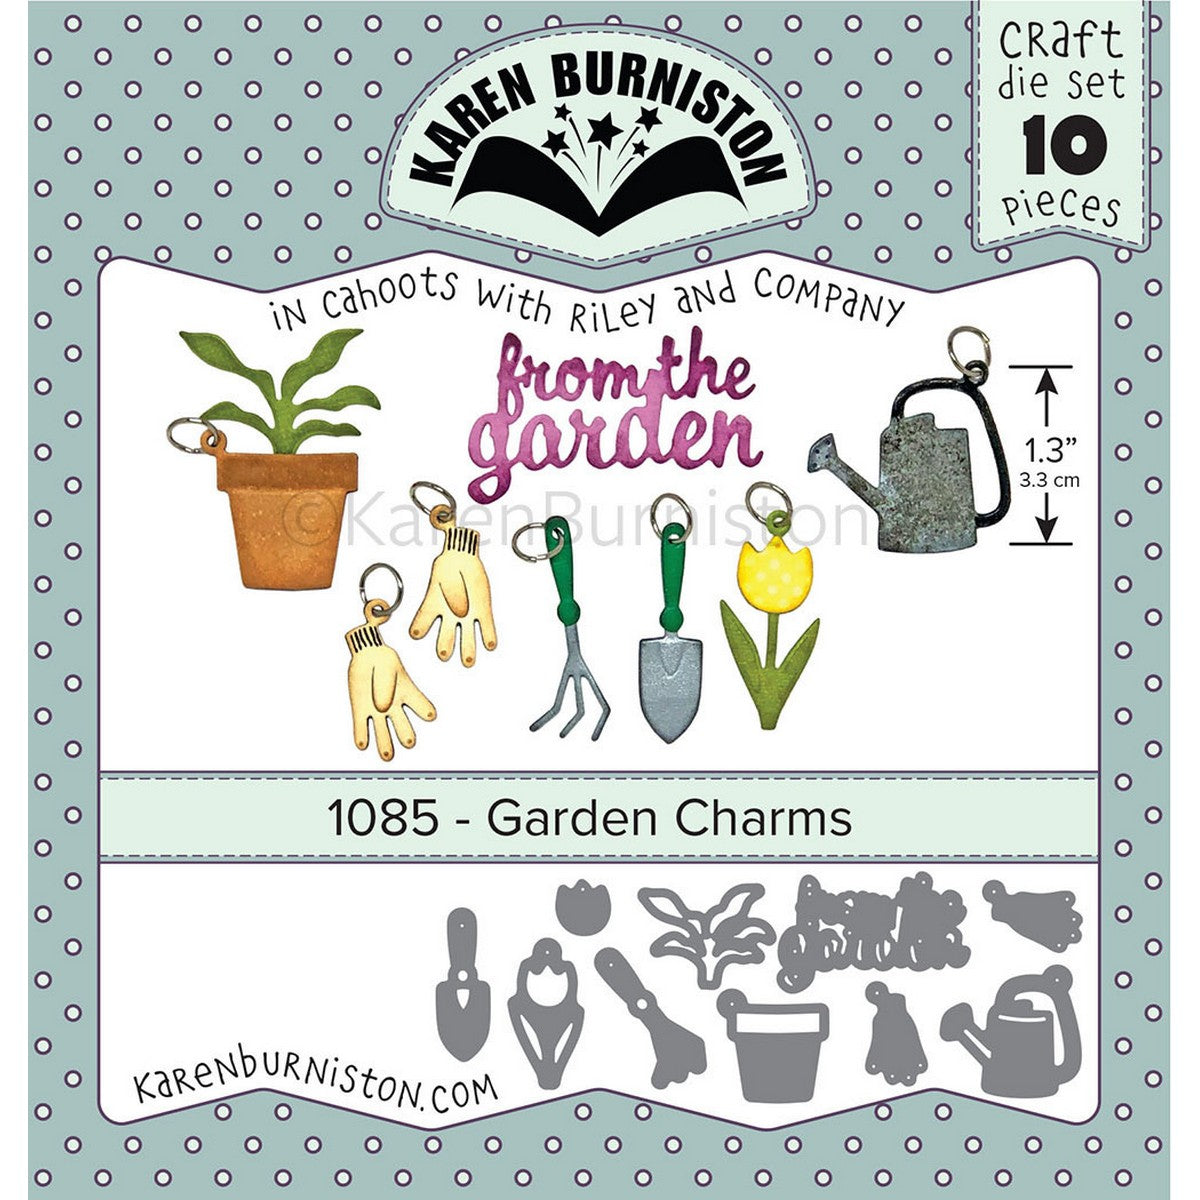 Karen Burniston - Garden Charms